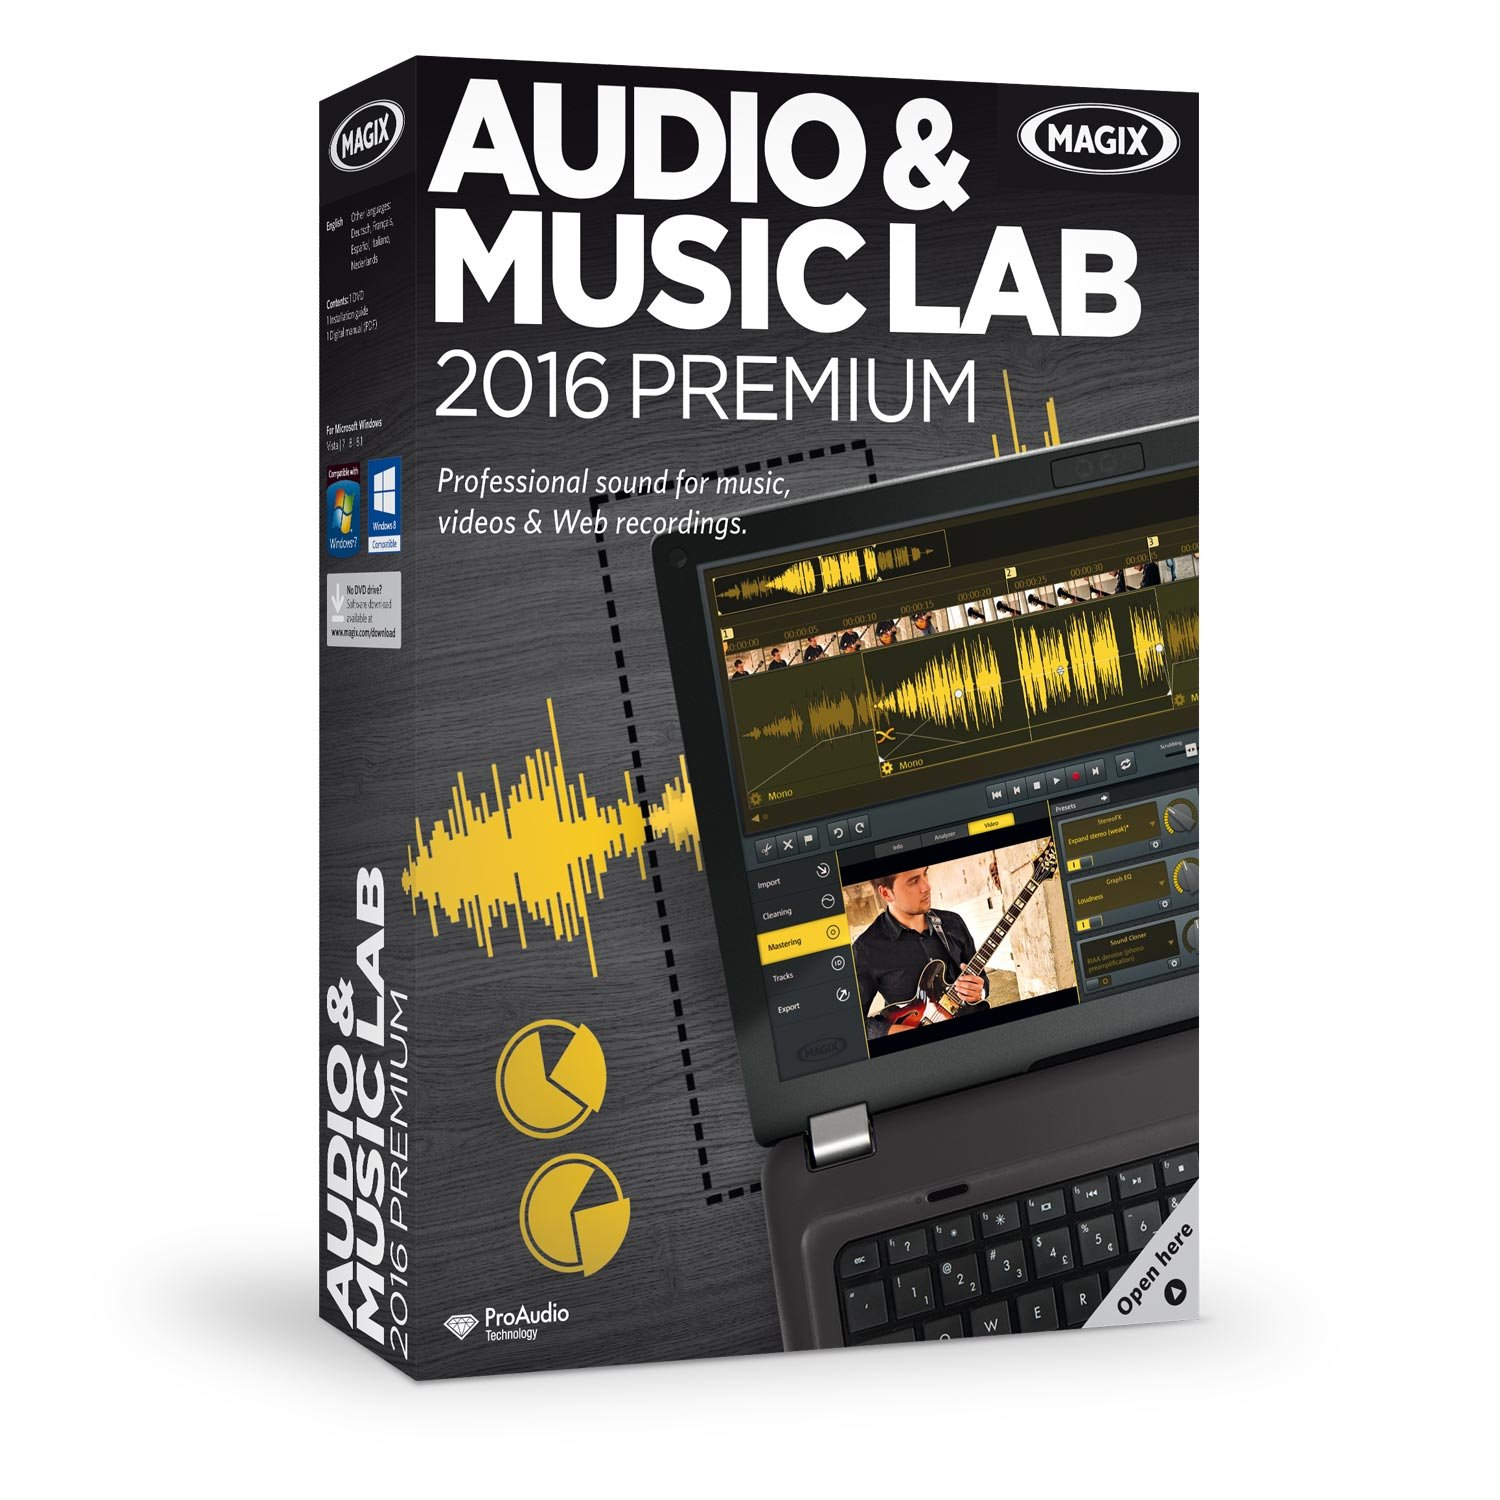 MAGIX Audio & Music Lab 2016 Premium by MAGIX